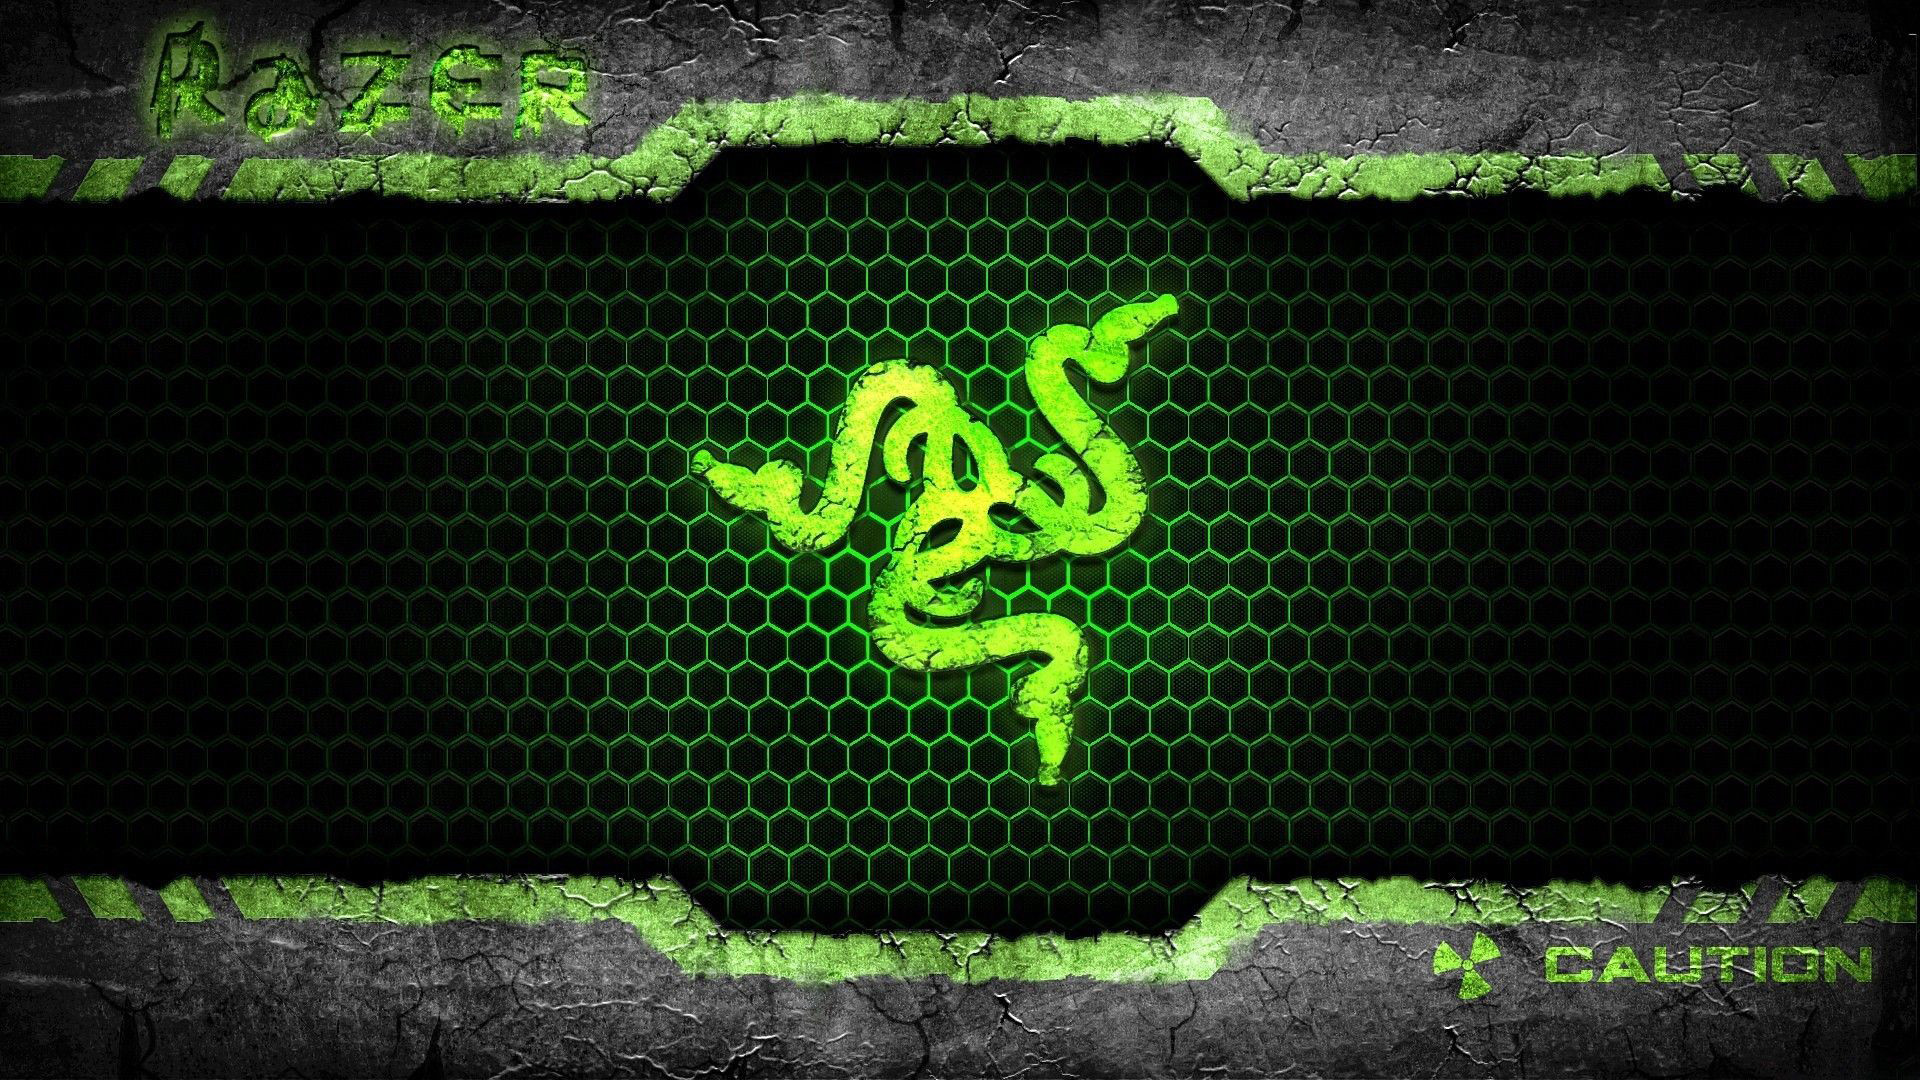 razer hd wallpaper